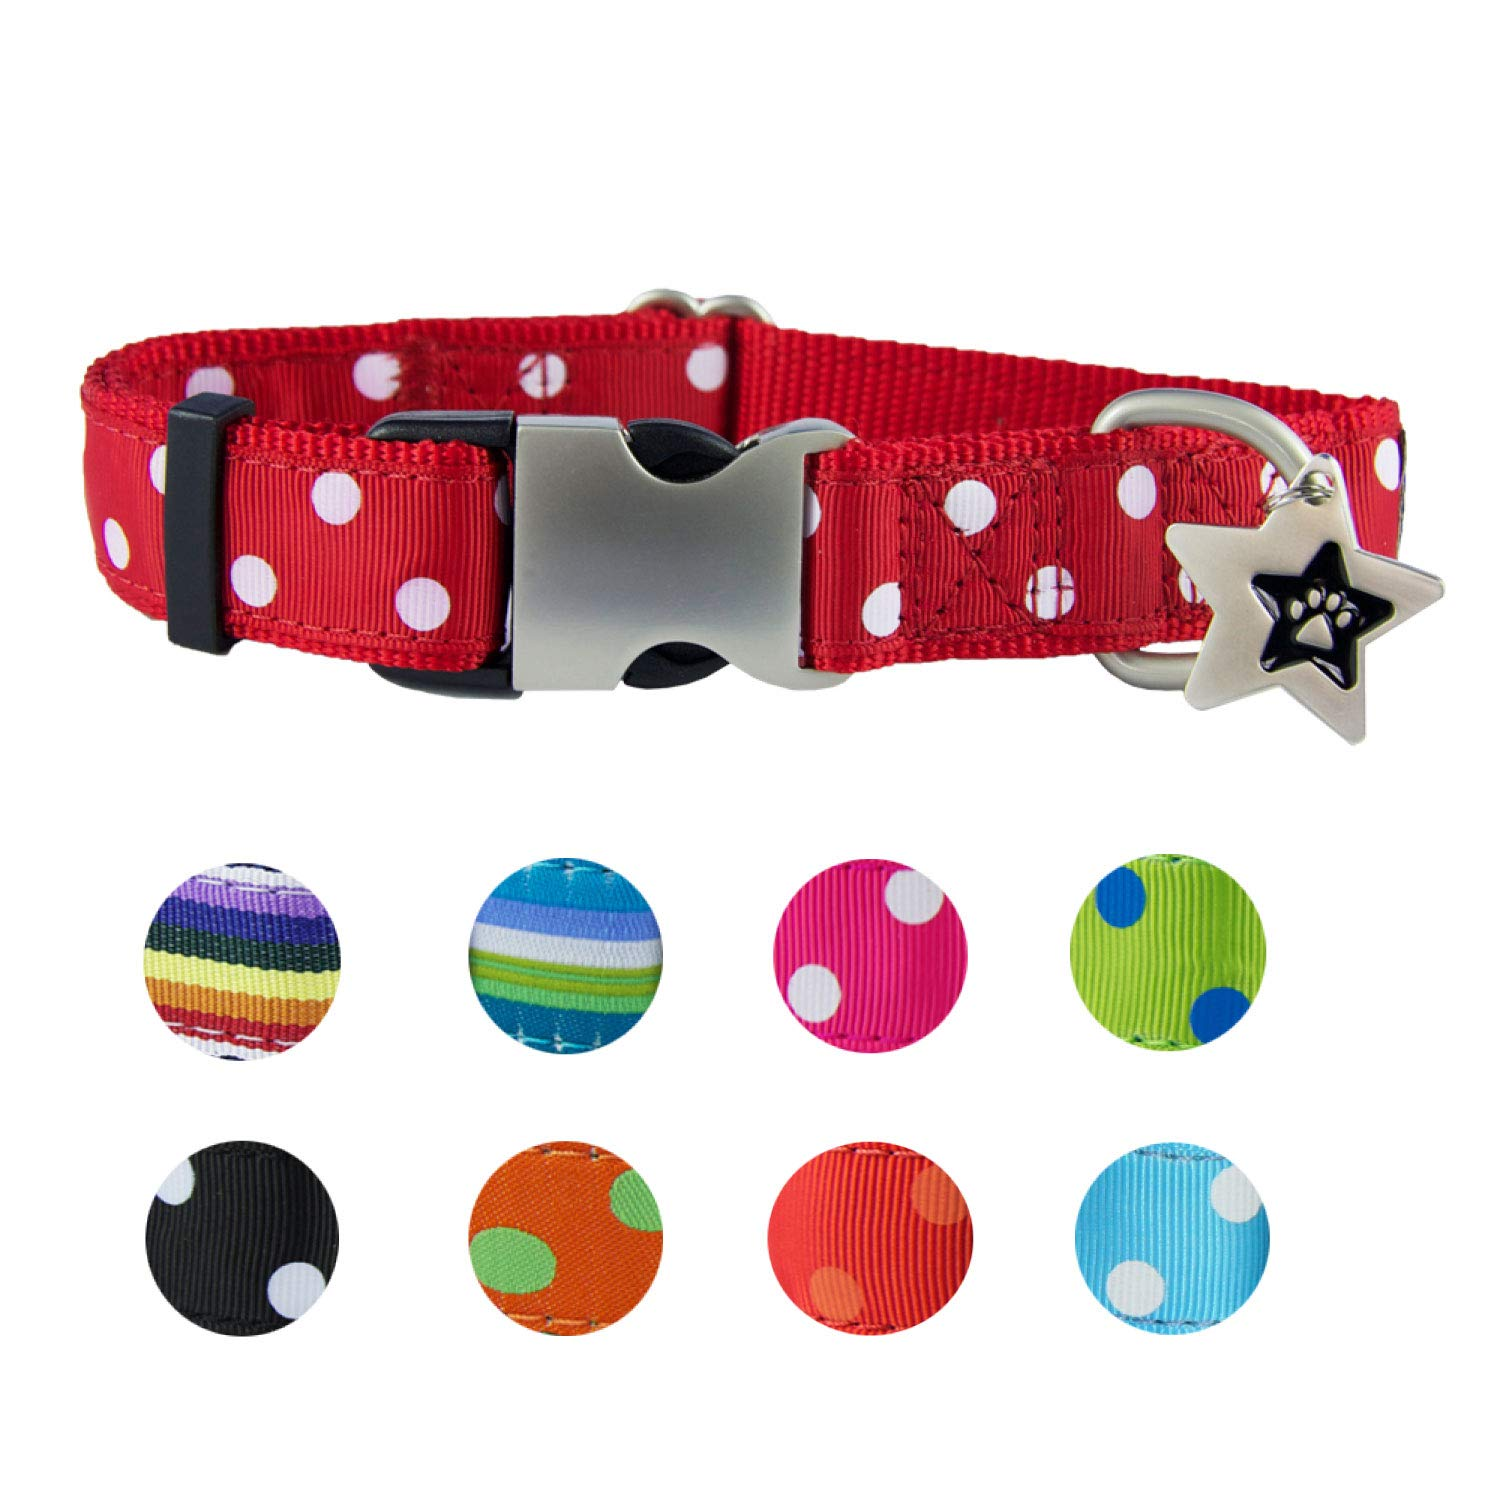 Max Cute Dog Collars for Small Dogs   Small Dog Collar Pink, Red, Spots for Female & Male   Soft Nylon Dog Ribbon Collar Metal Buckle Adjustable Size Free Star Dog ID Tag   Paw Dog Collar (Max)